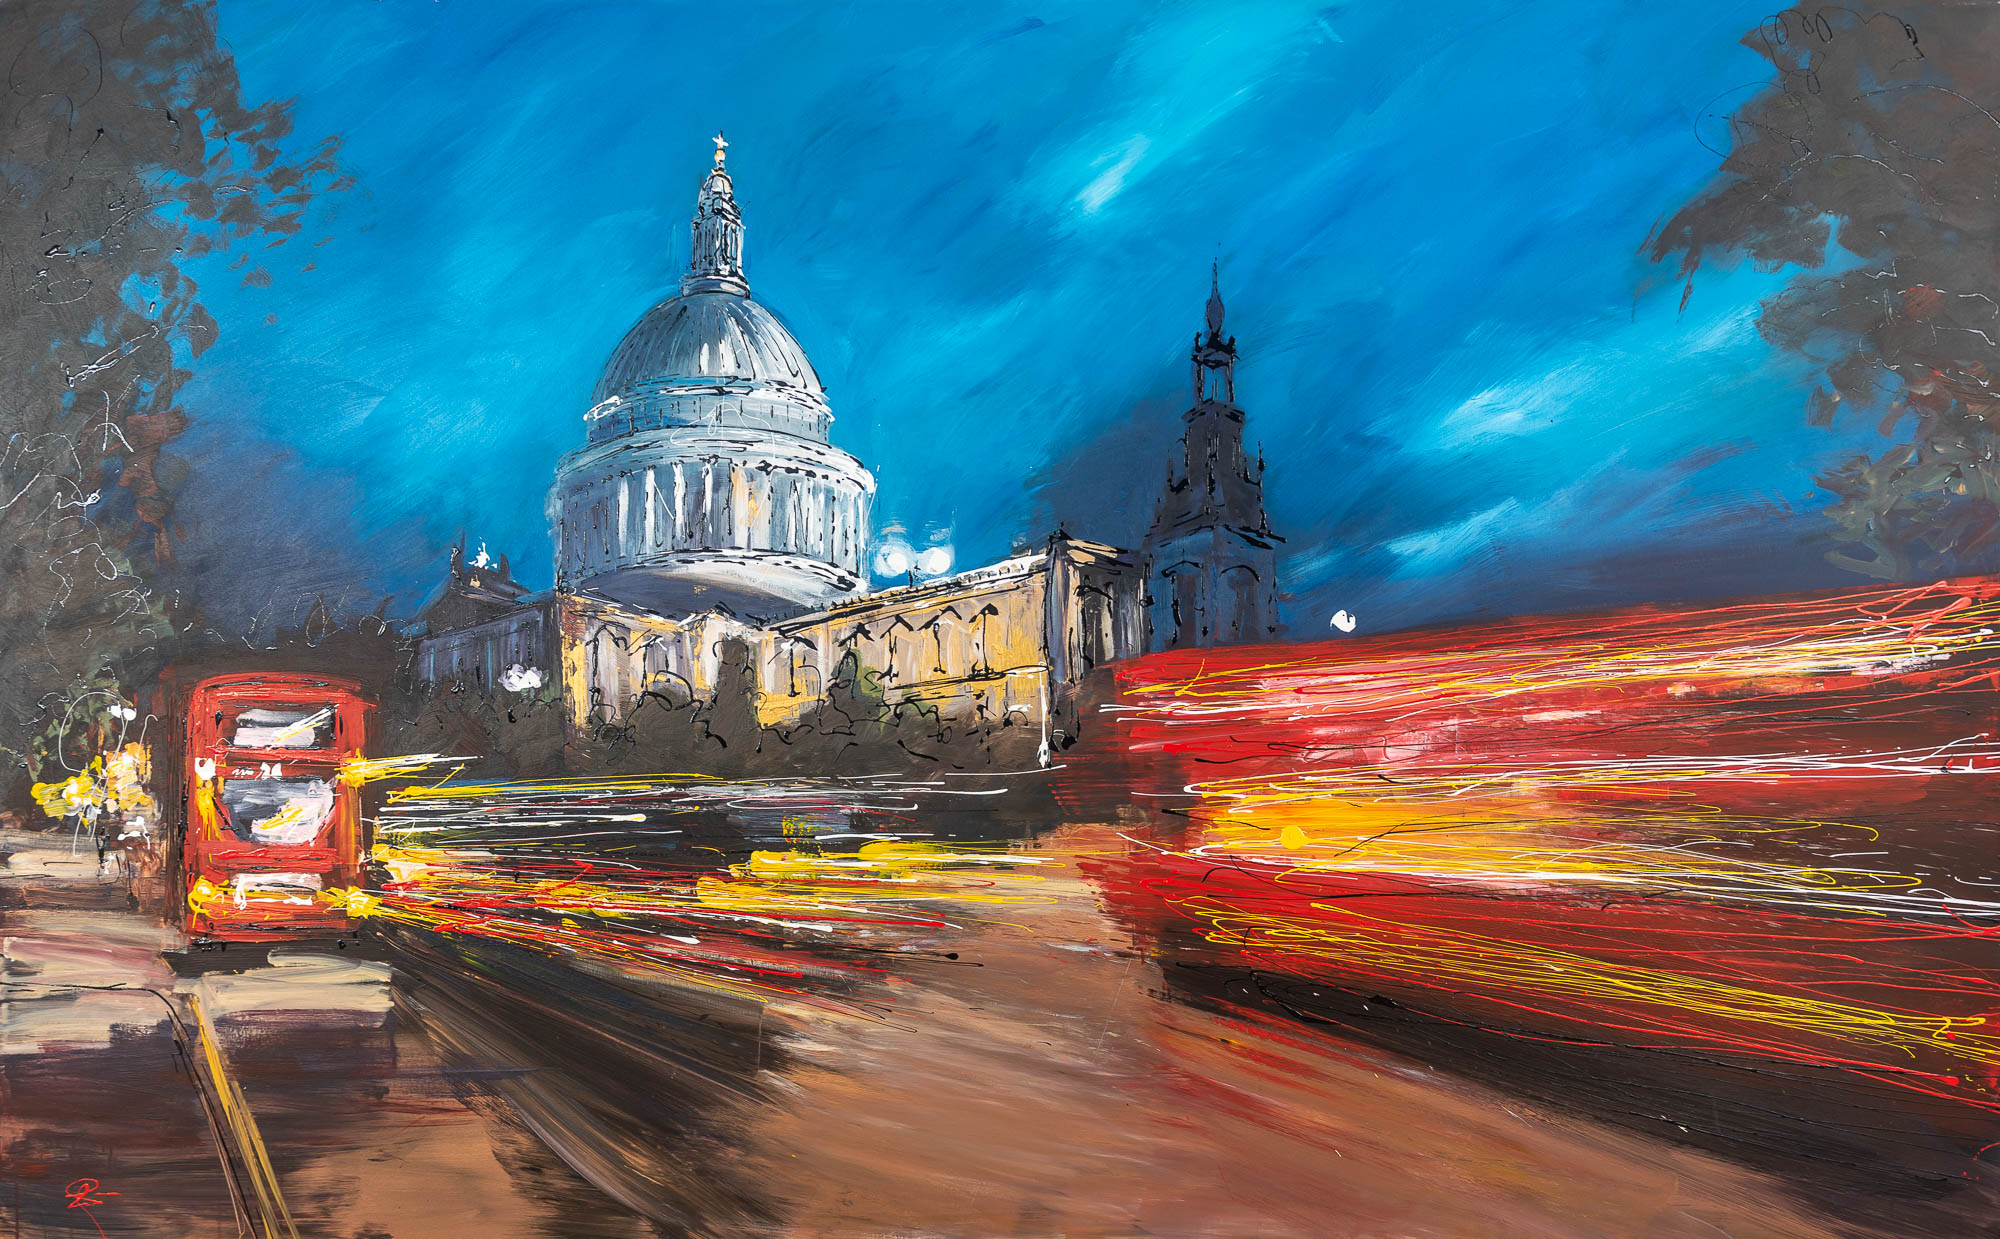 Kinetic St Pauls - Original Large Scale London Cityscape Painting by UK Contemporary Artist Paul Kenton, from the London Collection